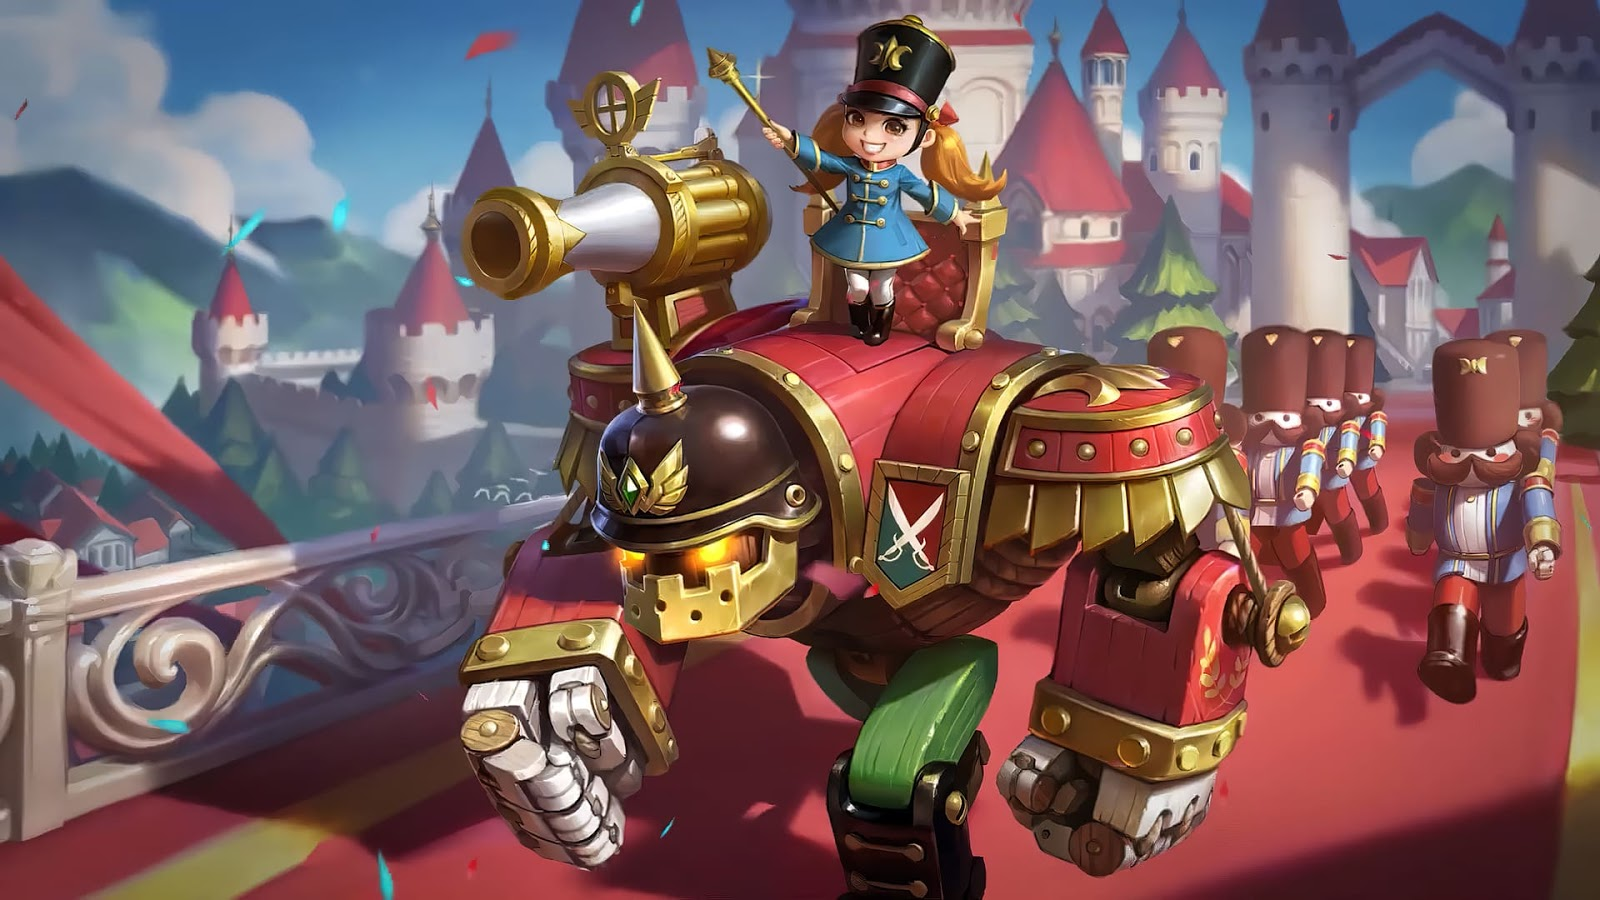 Wallpaper Jawhead The Nutcracker Skin Mobile Legends HD for PC